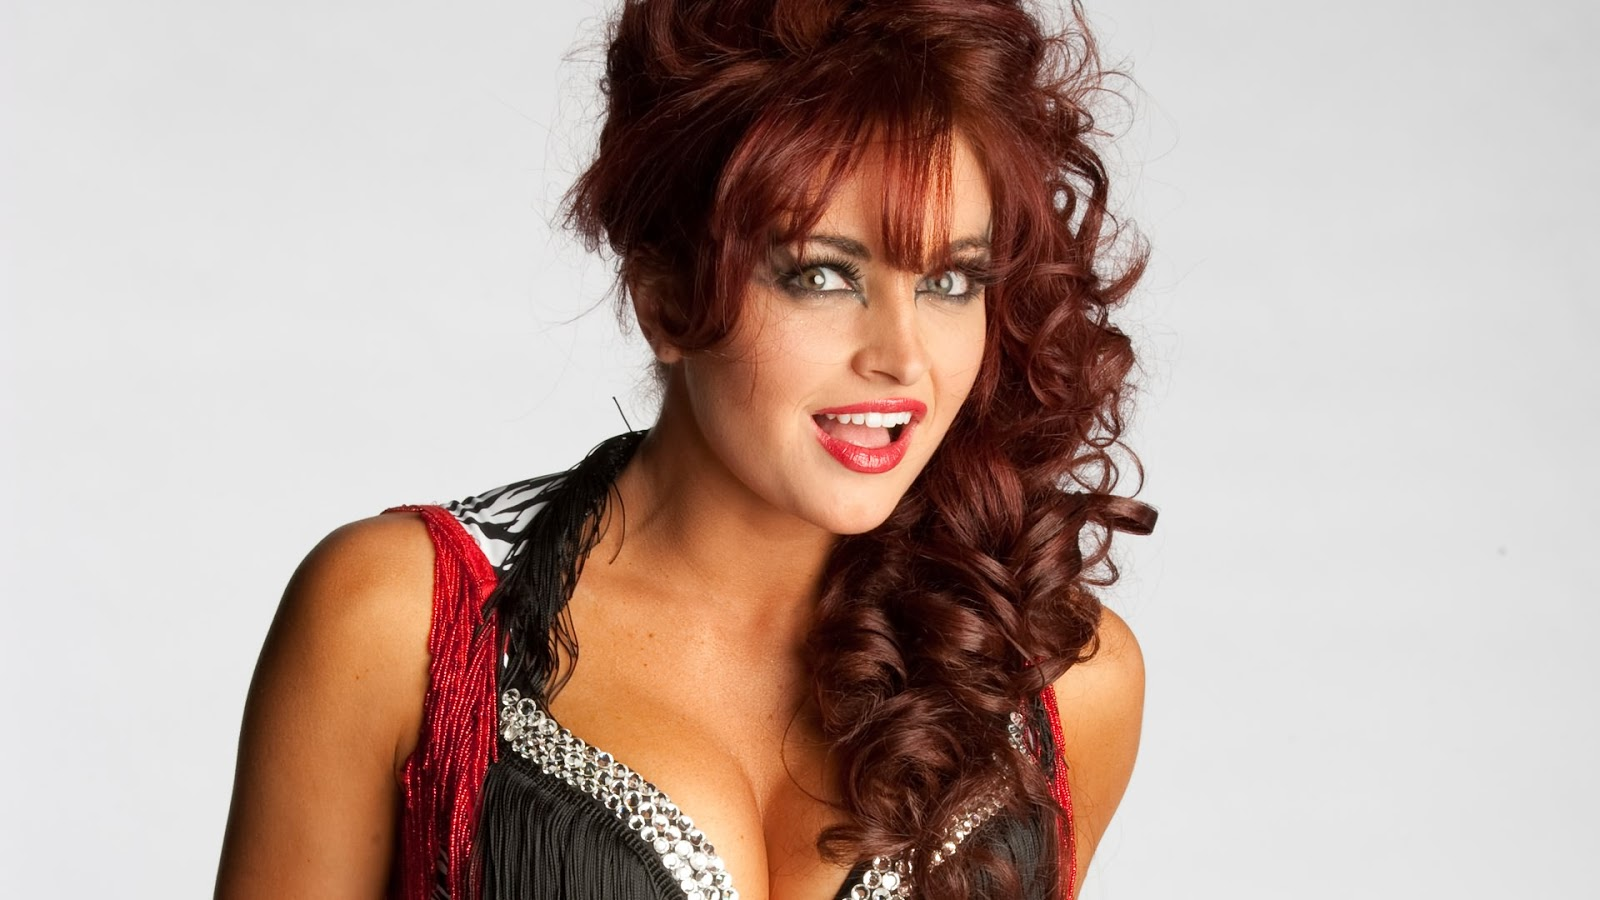 Wwe wrestling raw smackdown the divas maria kanellis - Wwe divas wallpapers ...